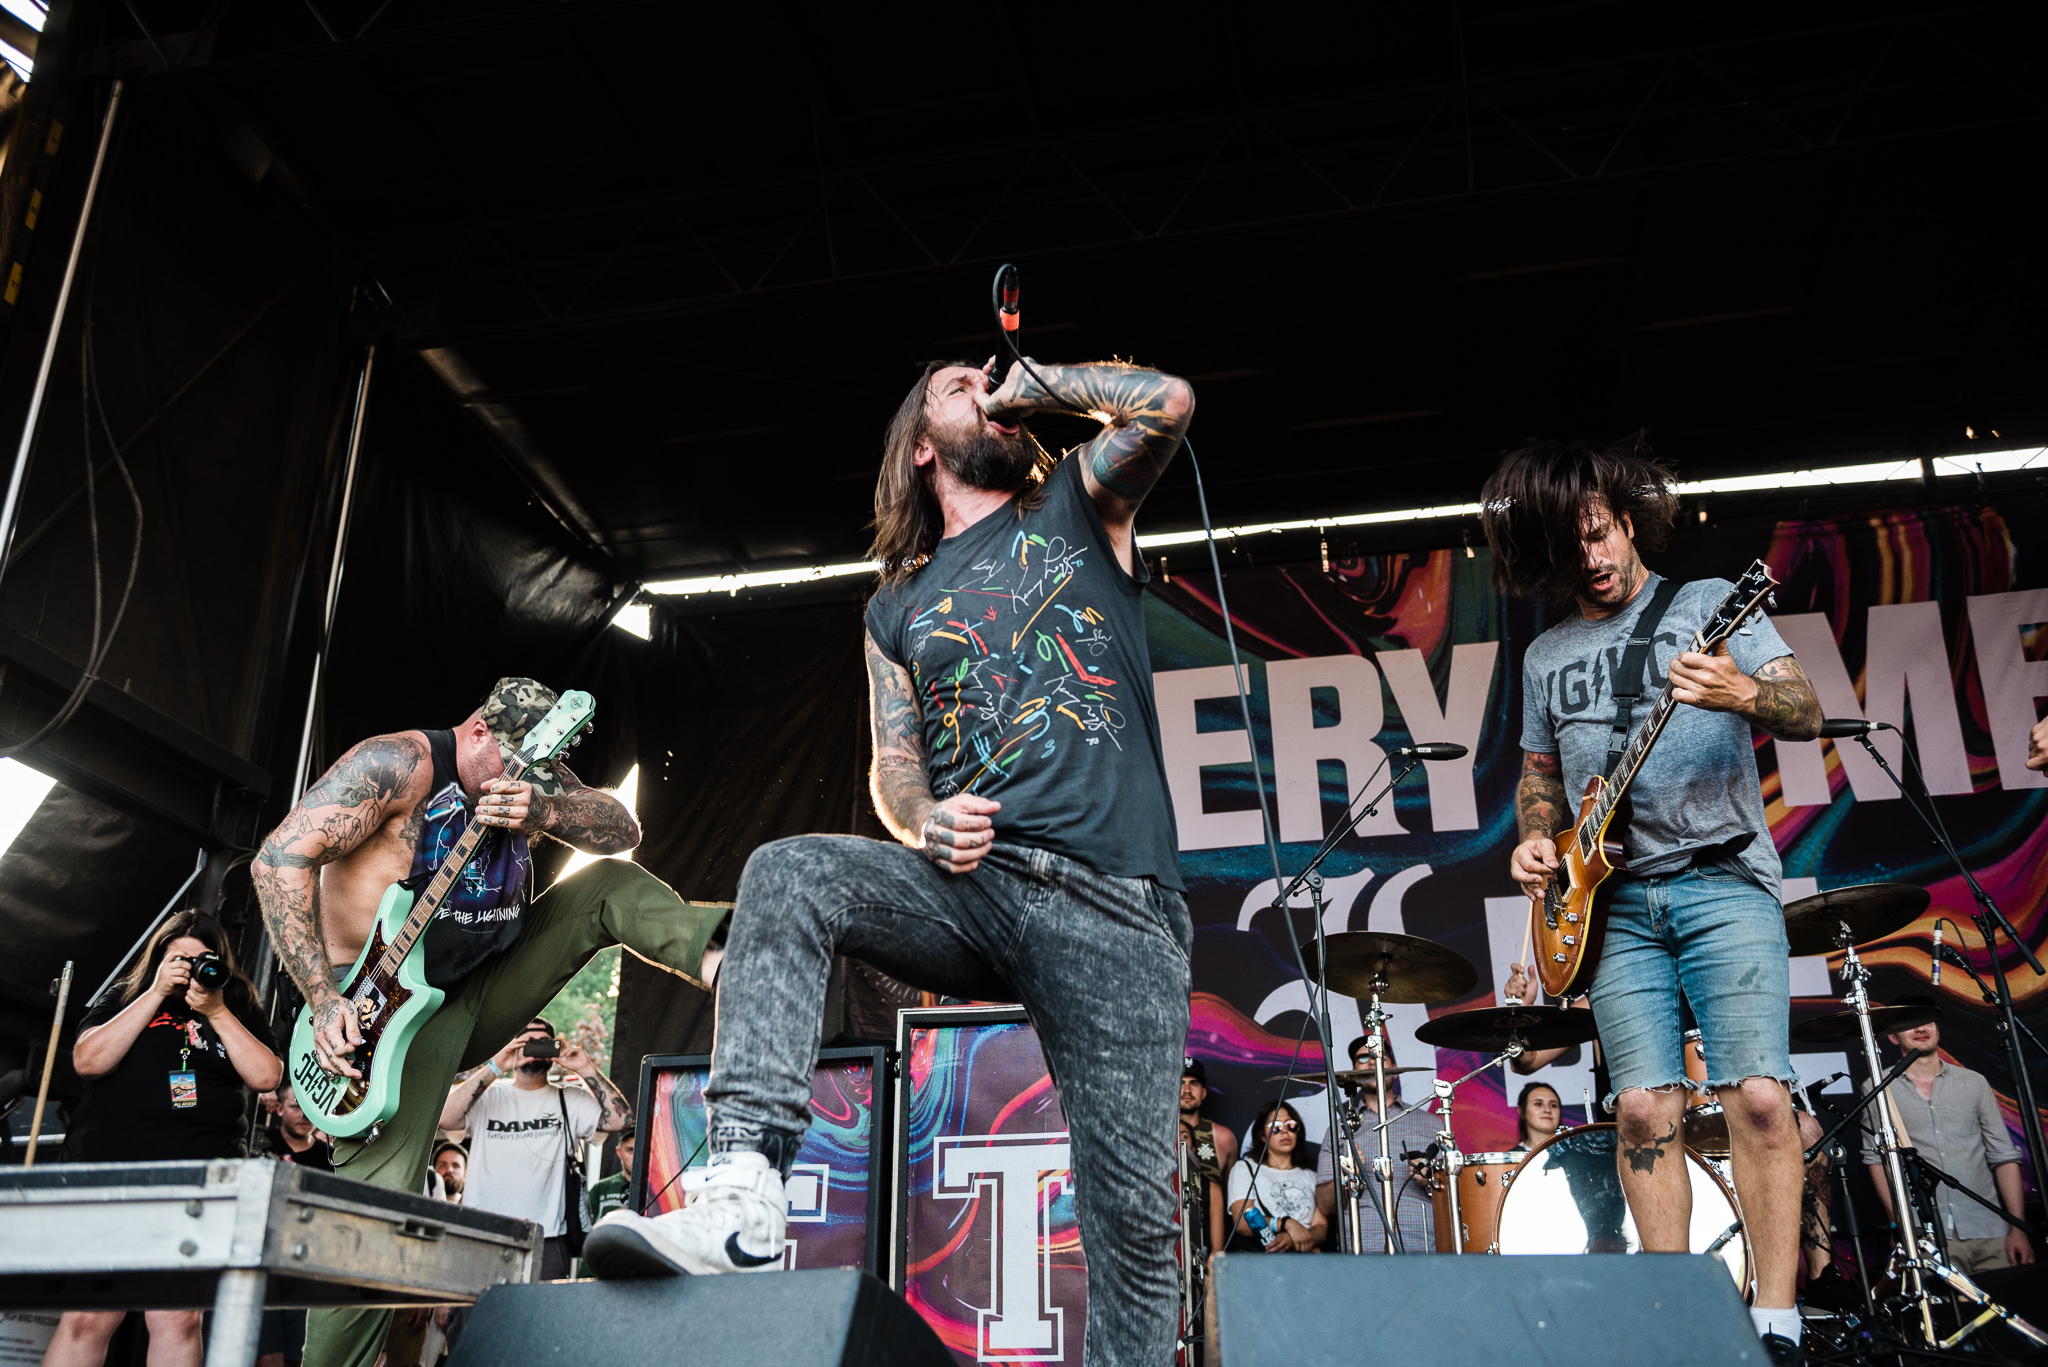 Every Time I Die Warped Tour 2018 PNC Bank Arts Center Holmdel NJ Stars and Scars Photo